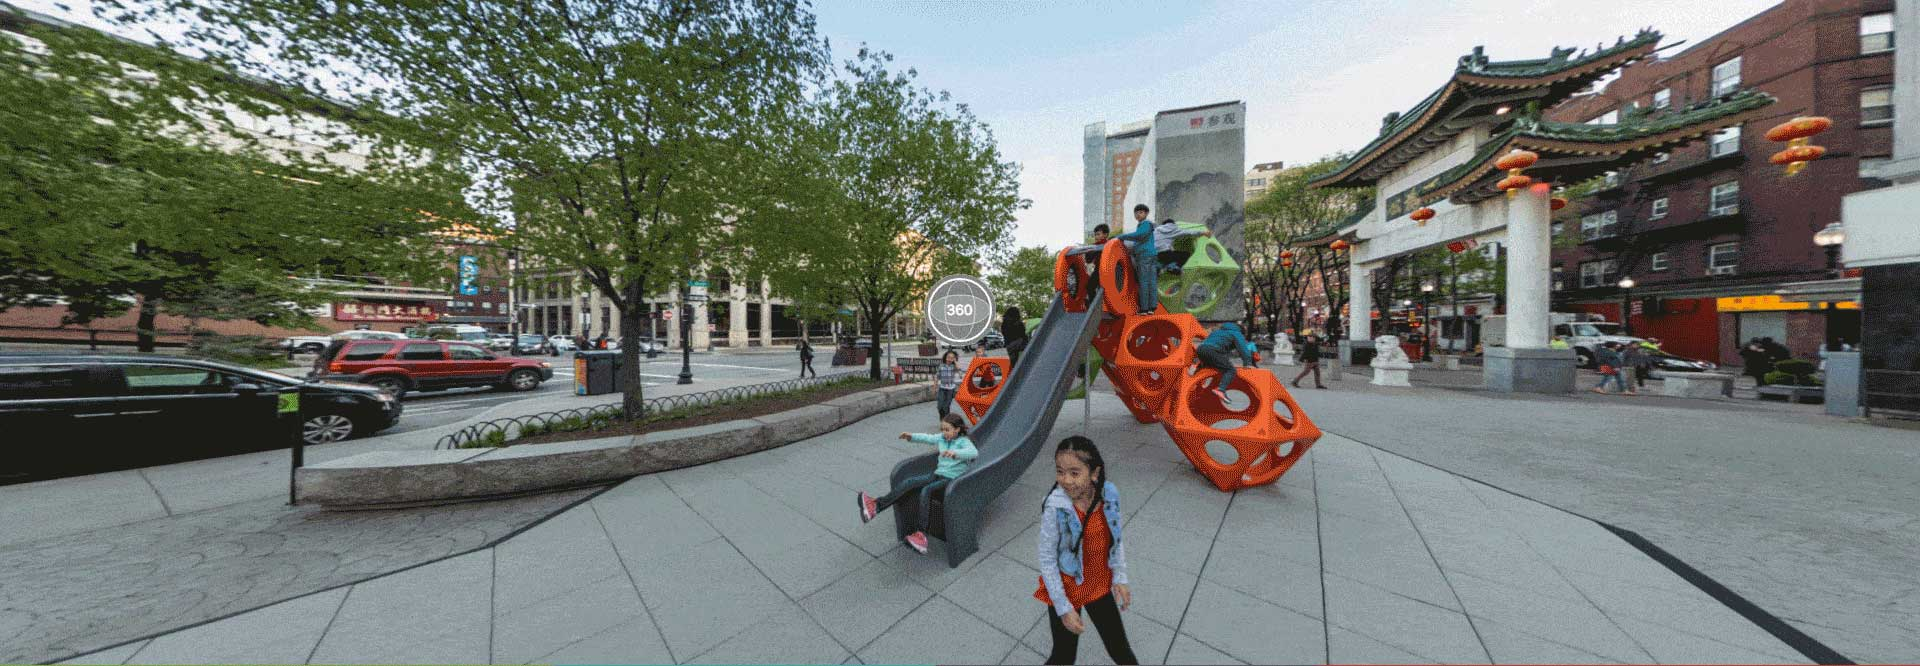 playworld commercial playground equipment manufacturer